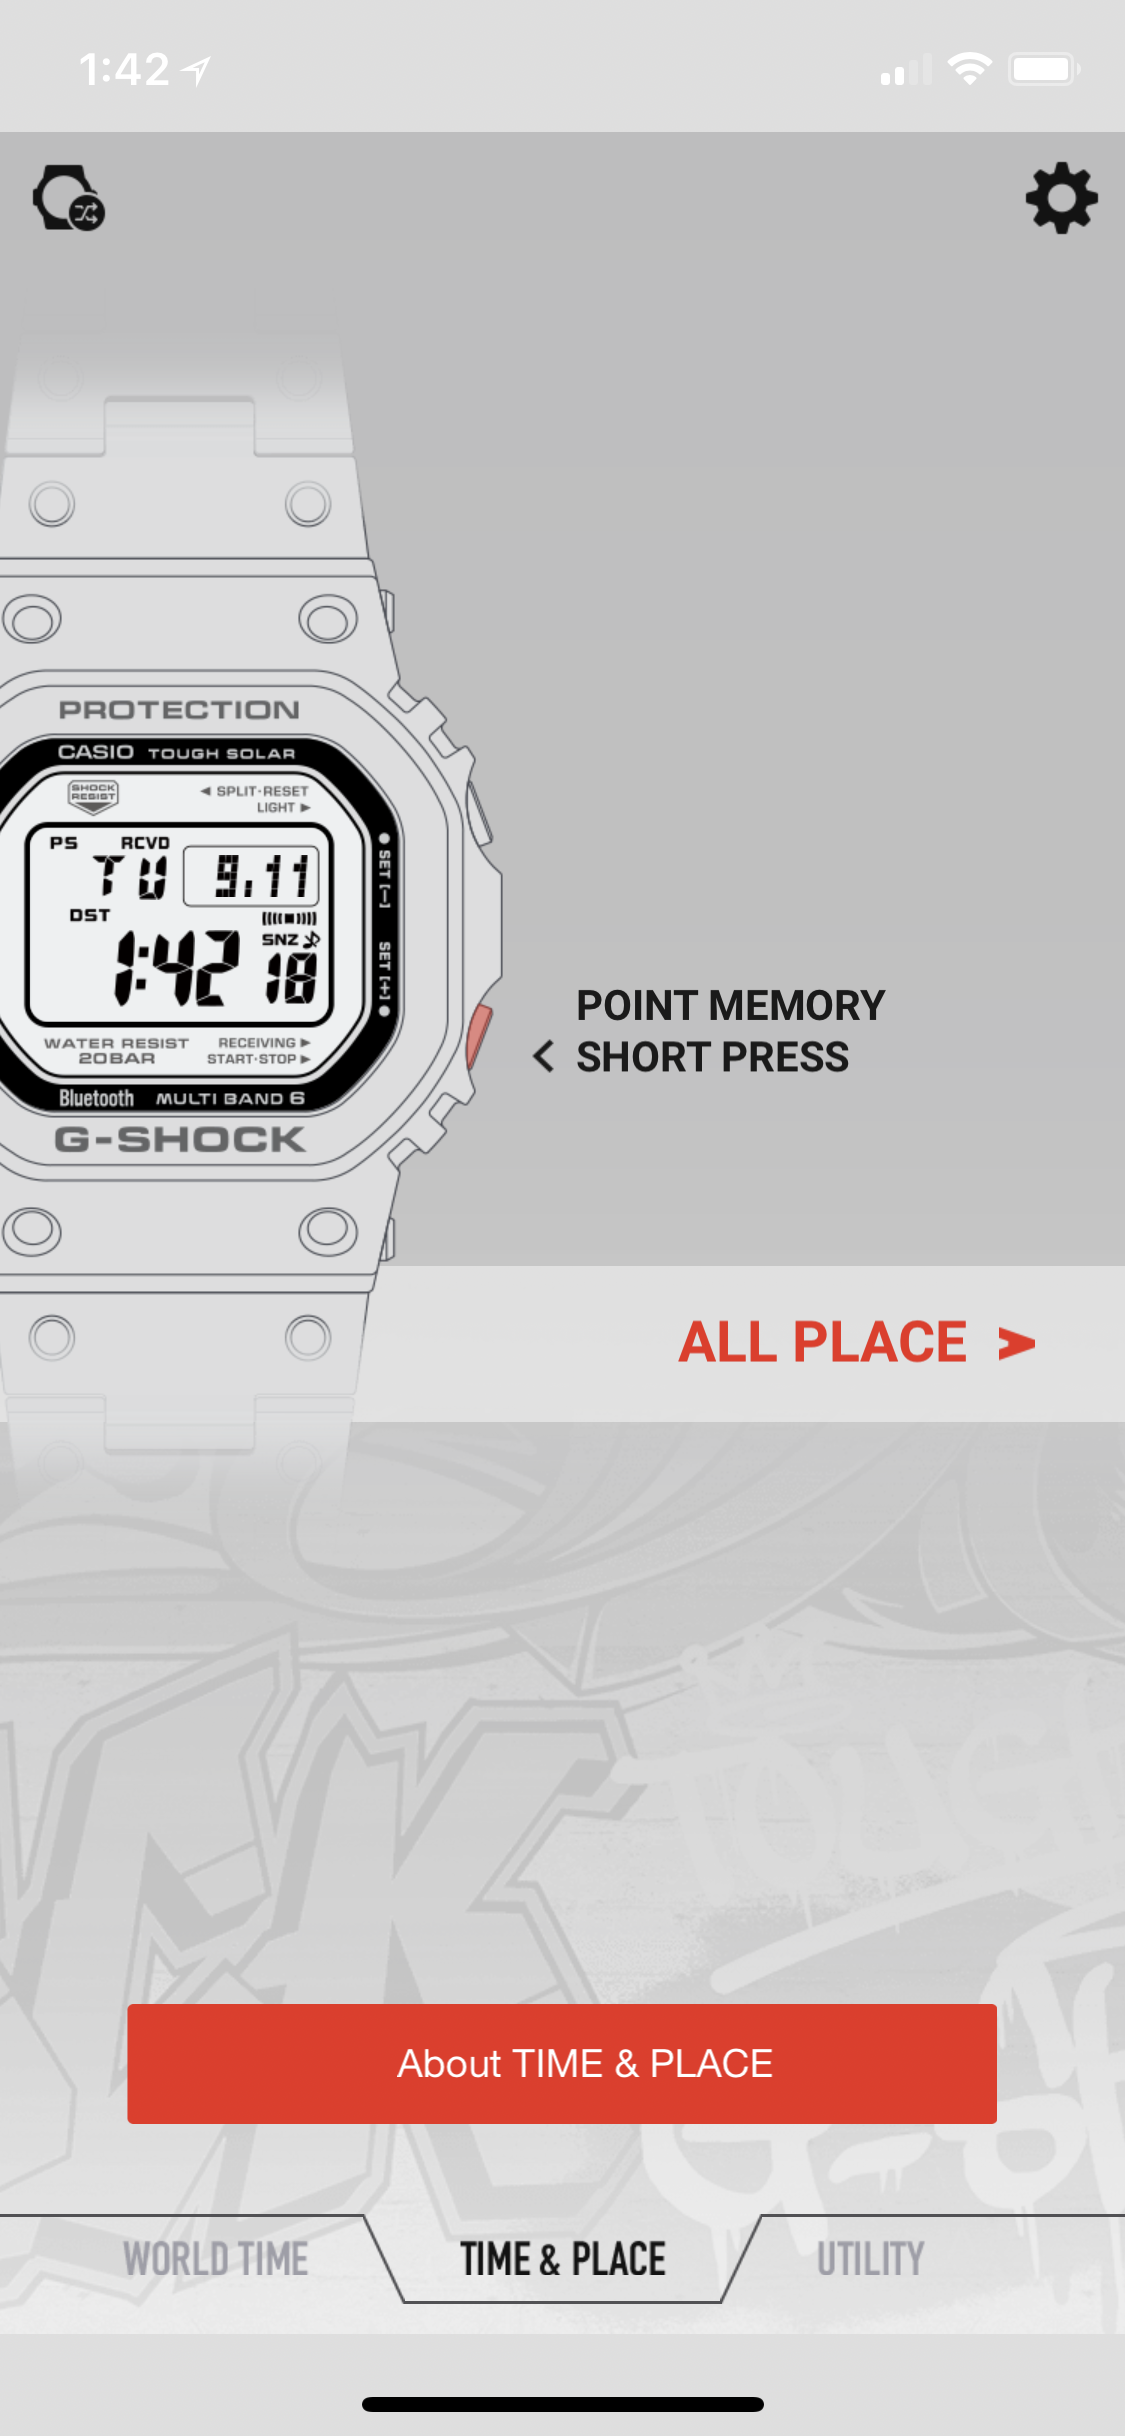 casio g-shock 35th anniversary models - 73.PNG